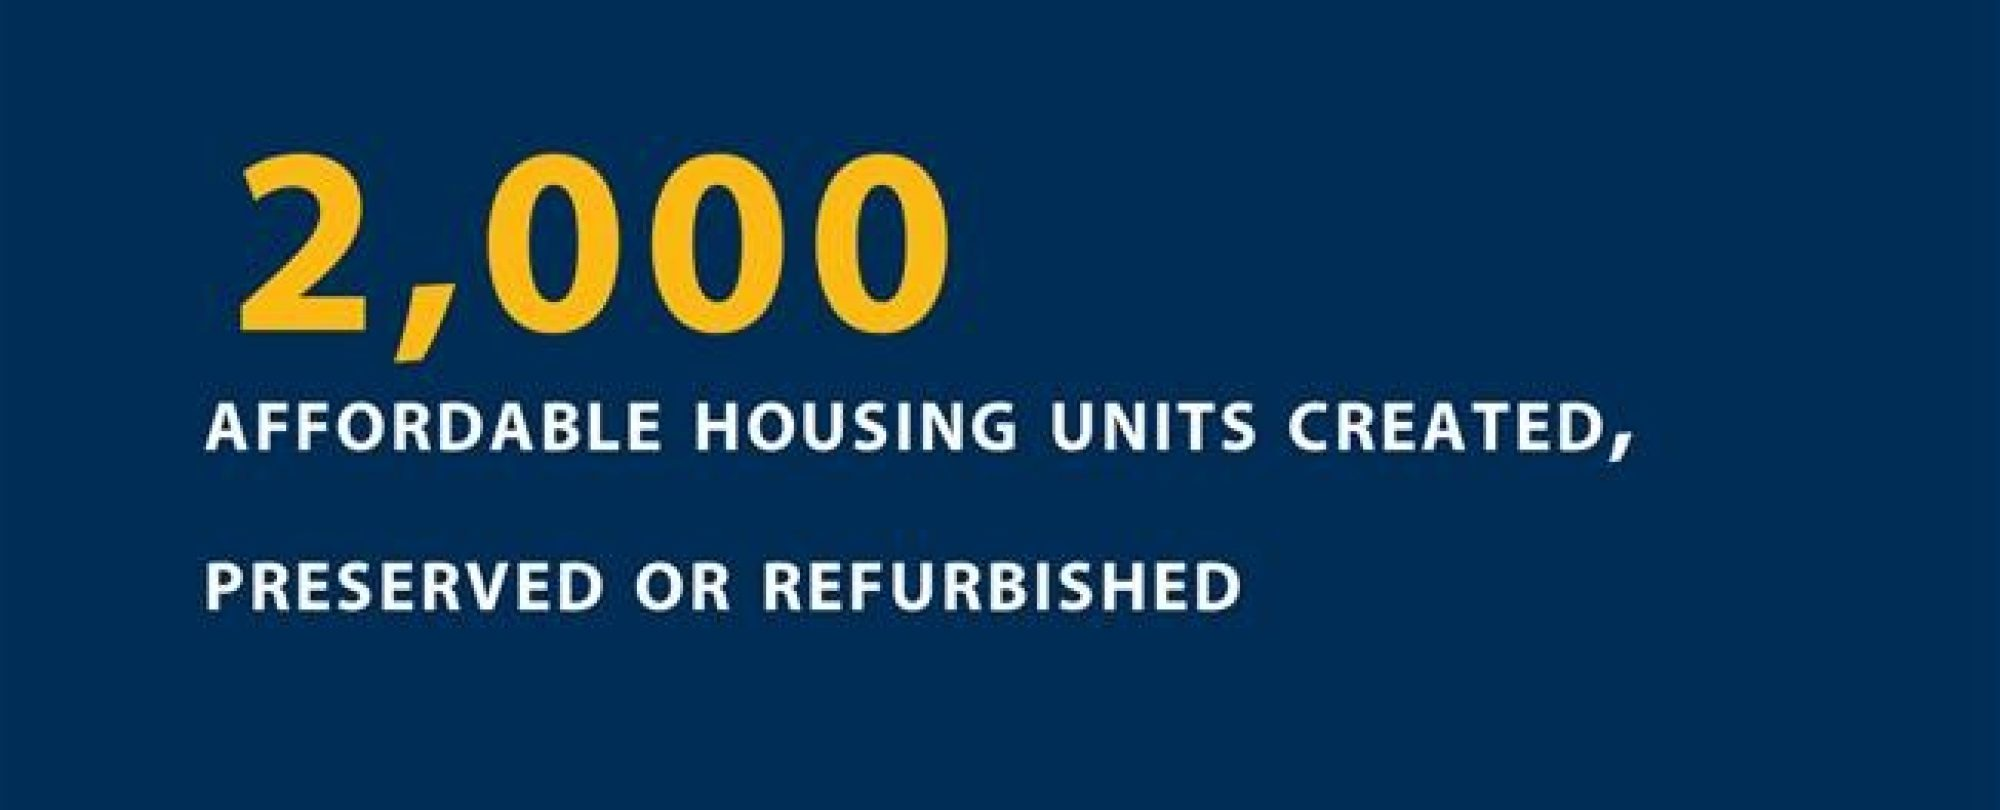 2000 affordable housing units creates, preserved, or refurbished